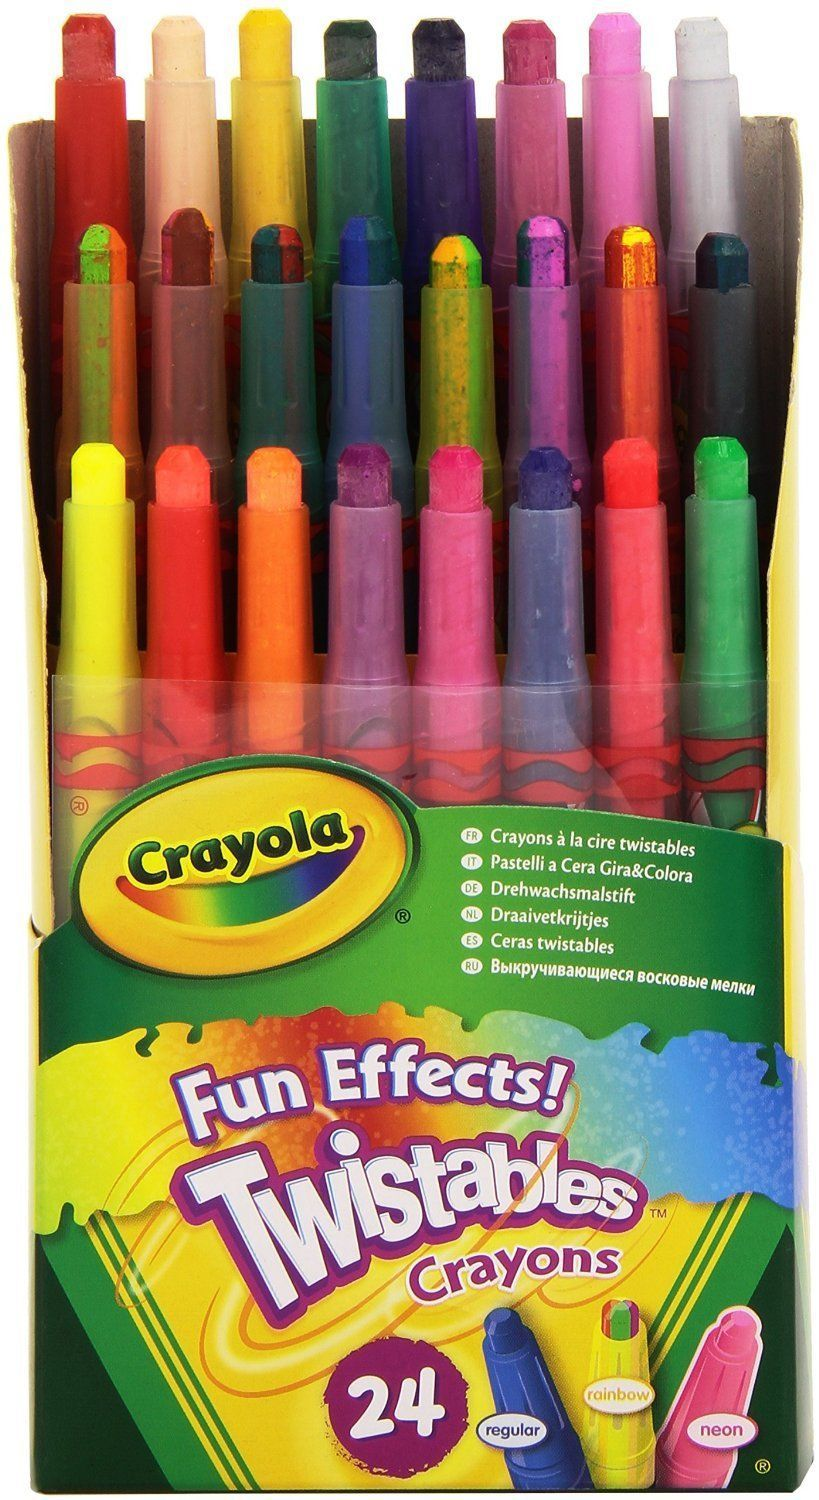 8 6 Crayola 9824 Twistables Crayons 24 Pack Fun Effects Colors